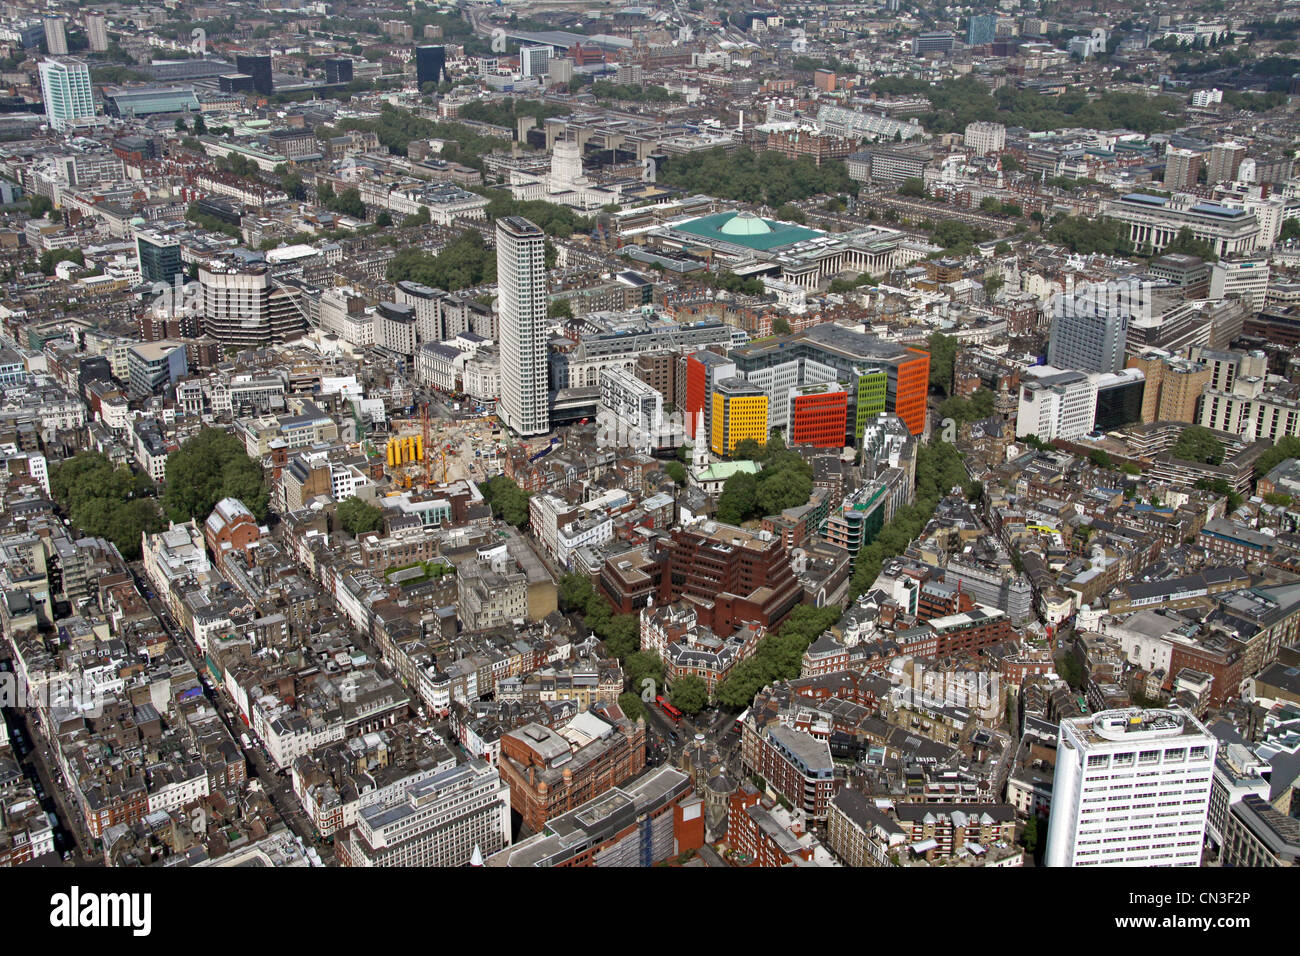 Aerial view looking up Shaftesbury Avenue towards the British Museum - Stock Image